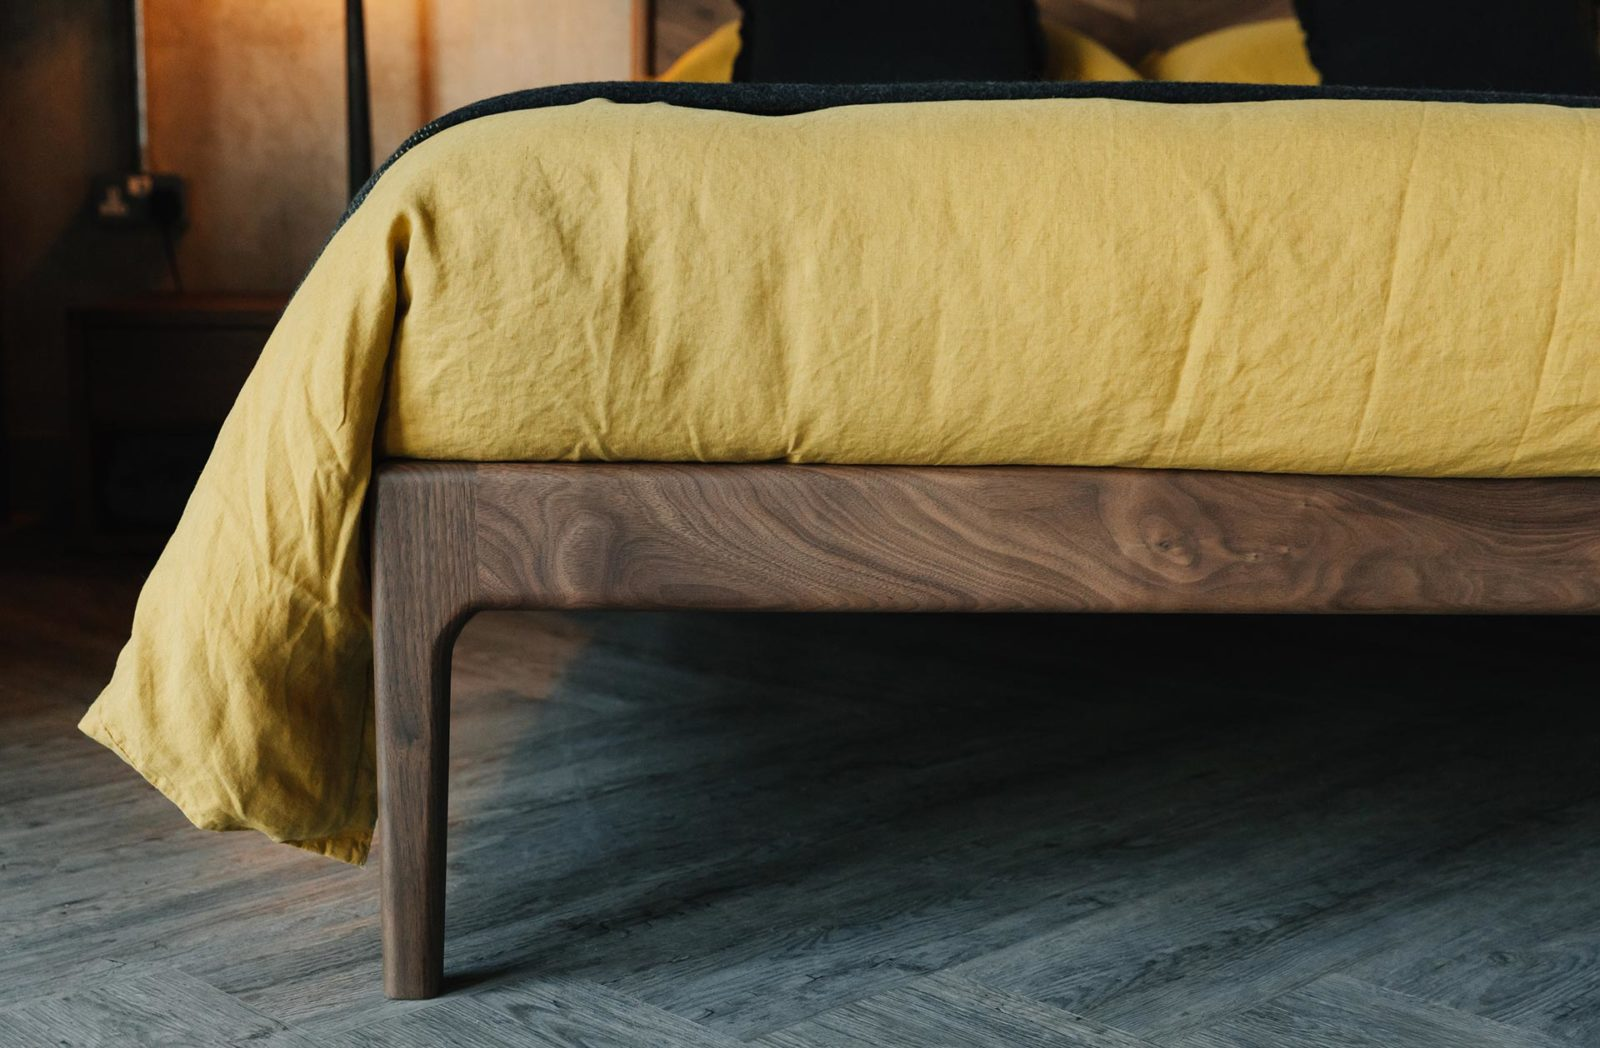 Hoxton bed leg in solid walnut